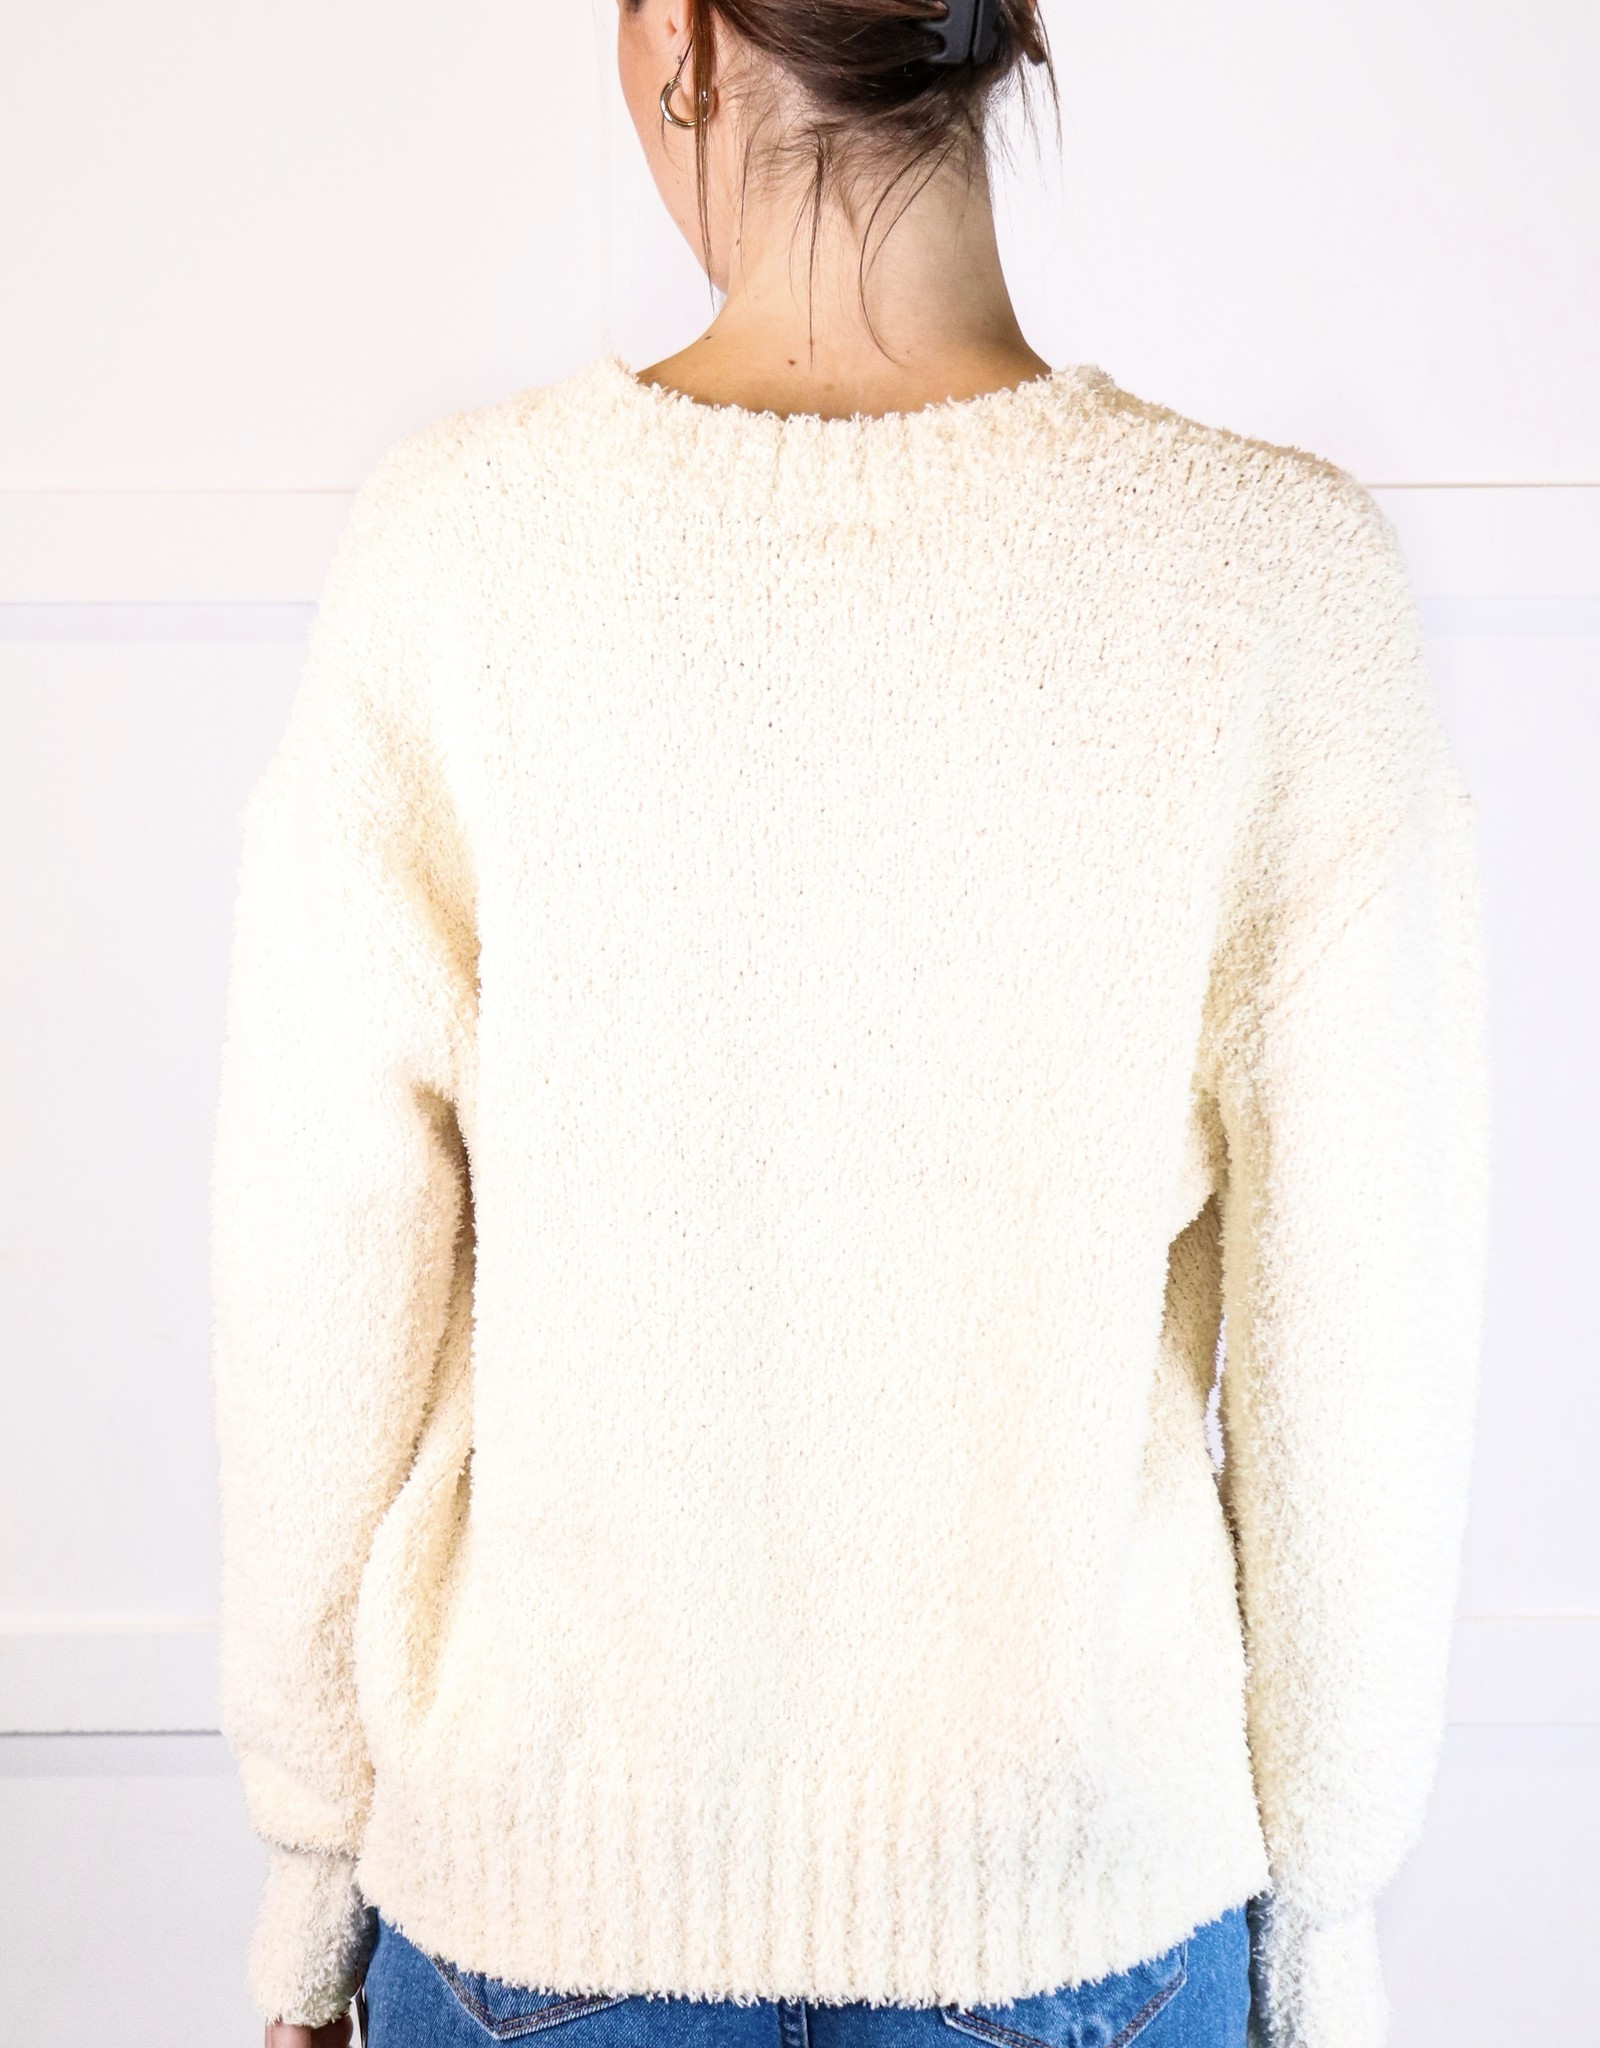 HUSH Soft mock neck l/s sweater